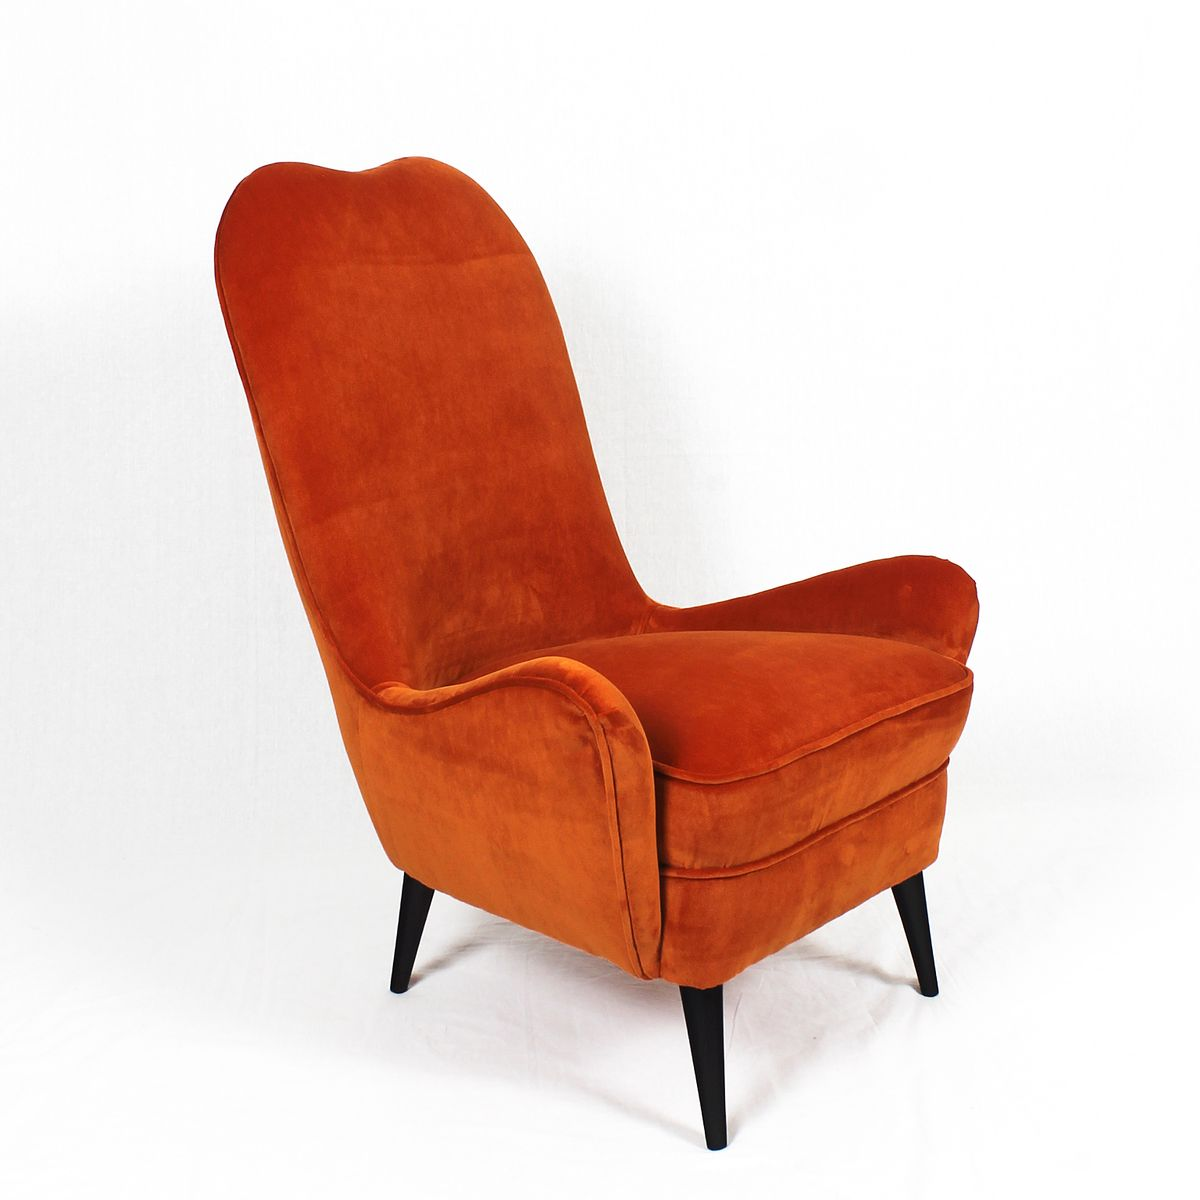 bedroom chair retro le corbusier lc4 lounge vintage chairs 1940s set of 2 for sale at pamono